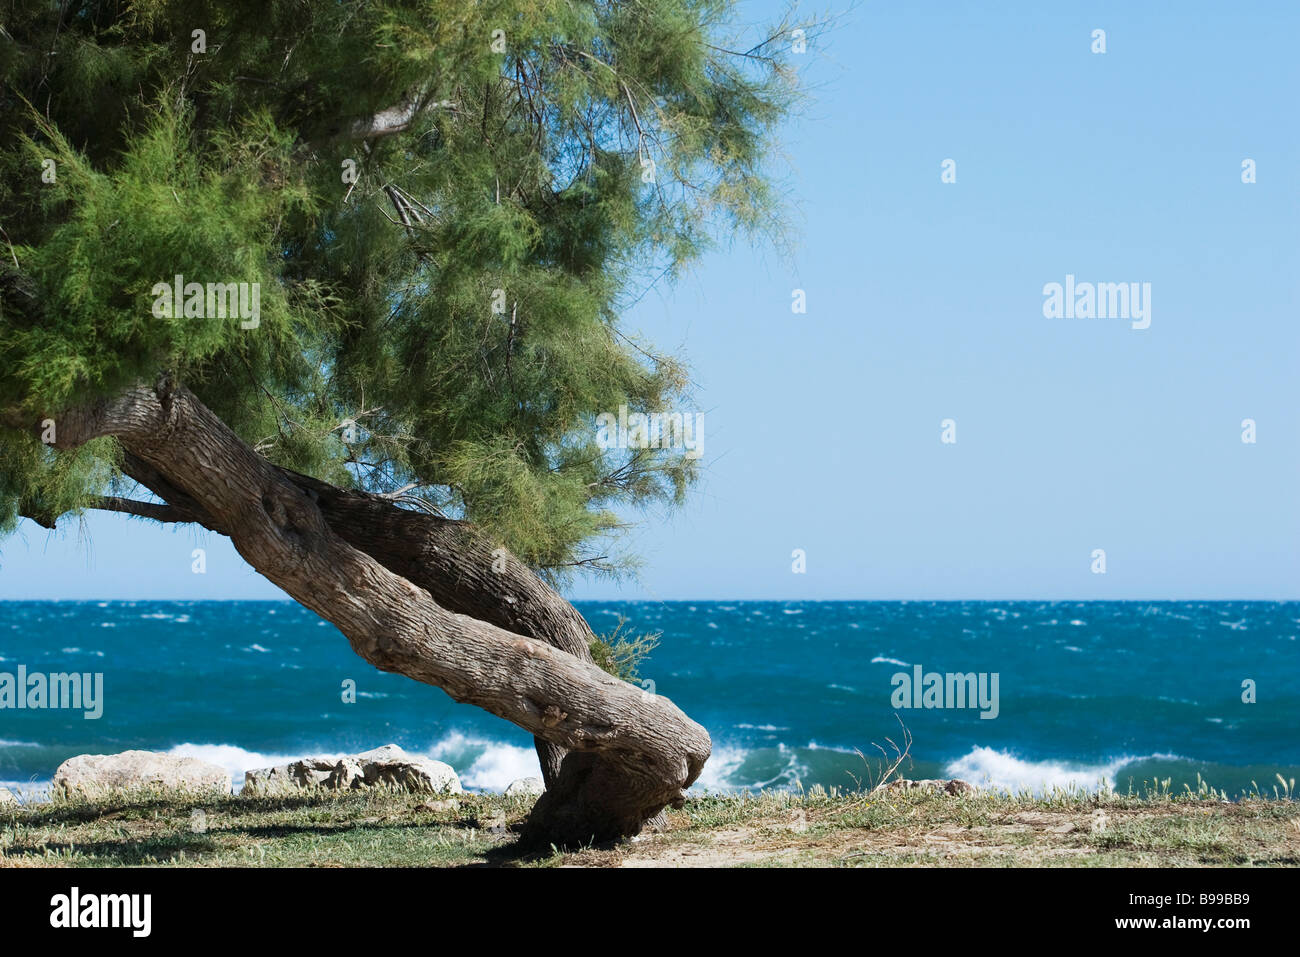 Twisted white pine tree growing on sea shore - Stock Image